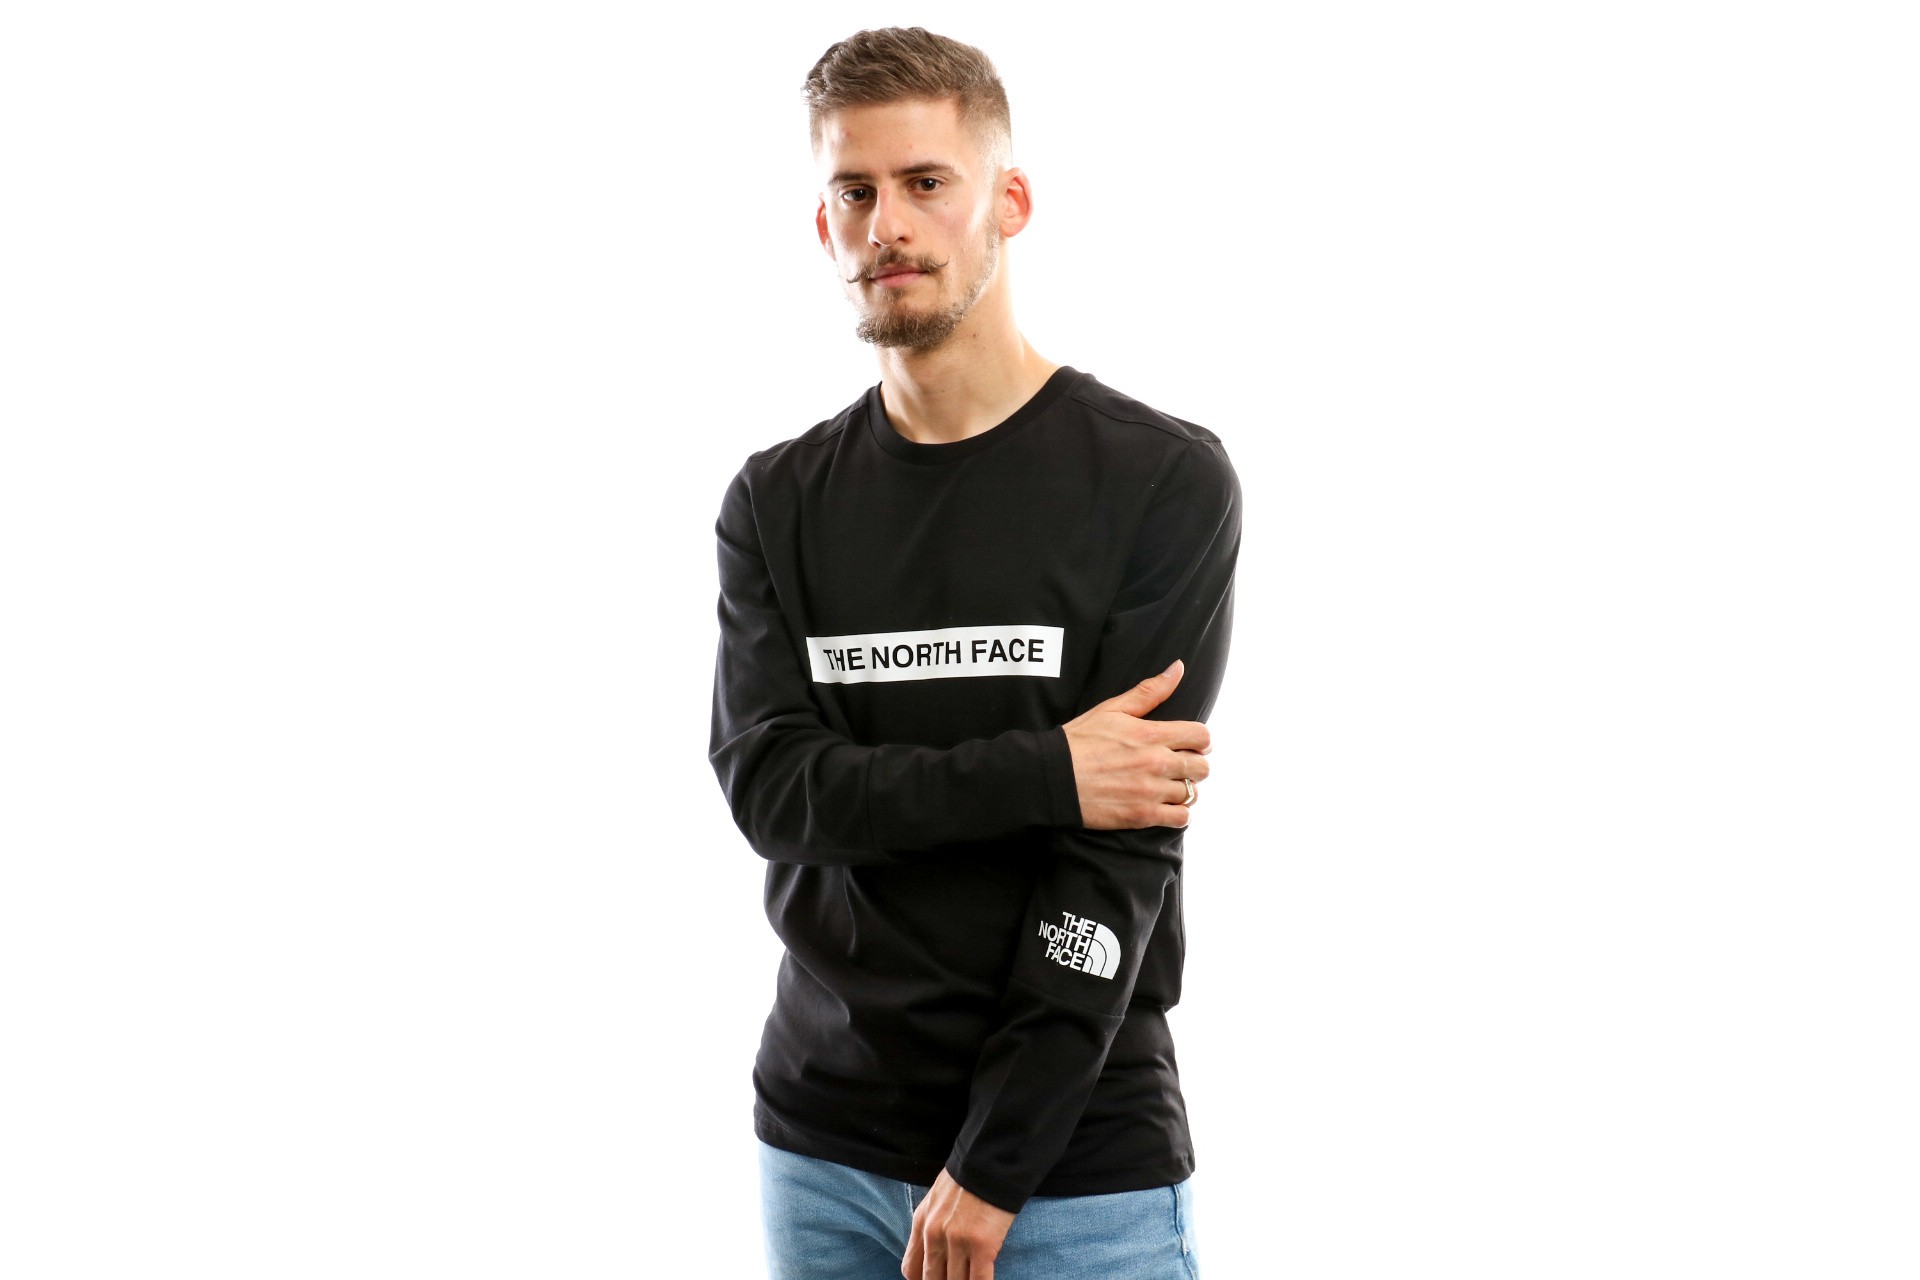 The North Face M L/S Light Tee T93S3G Longsleeve Tnf Black